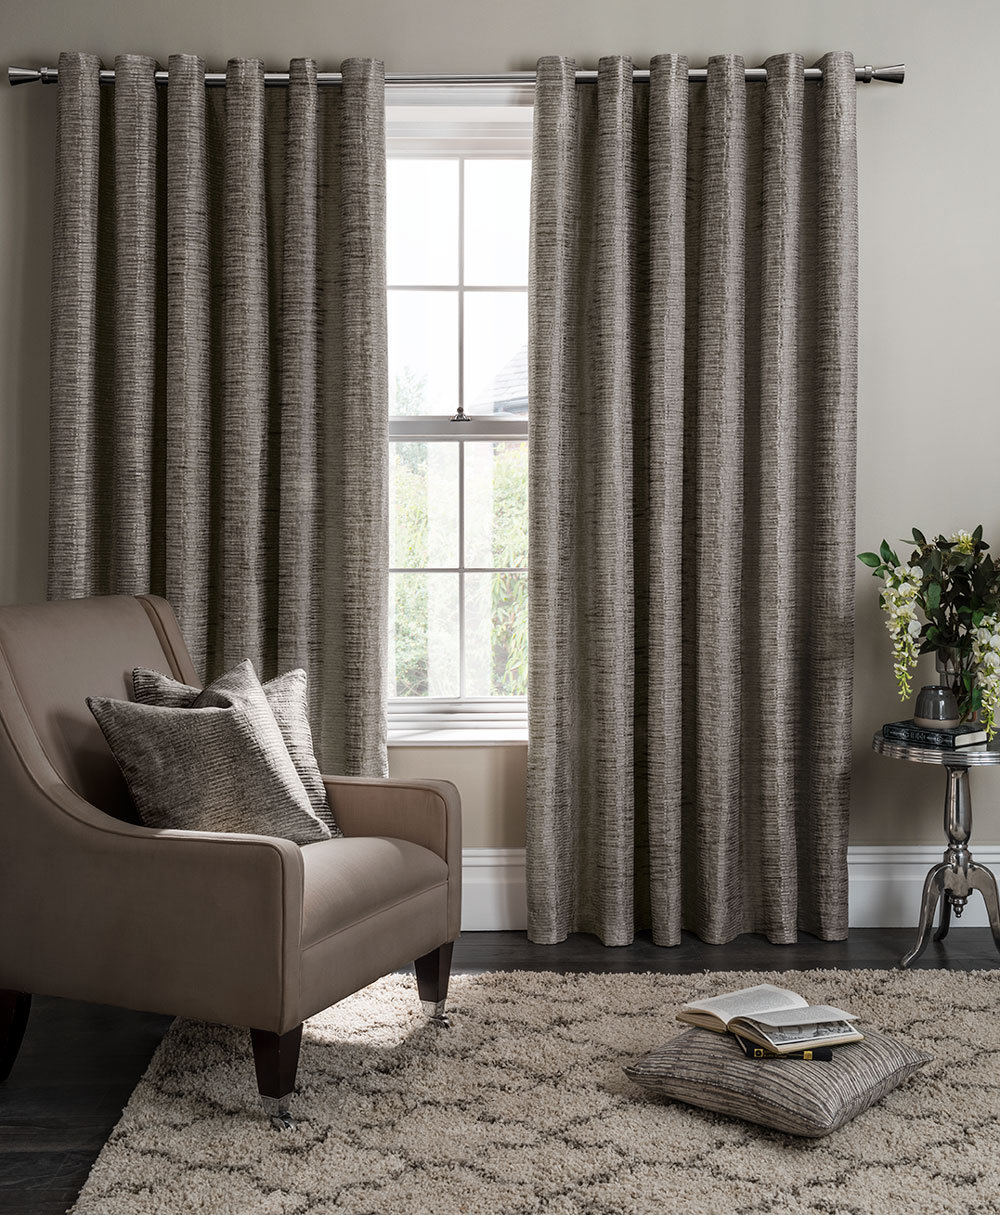 Campello Eyelet Curtains Ready Made Curtains - Charcoal  - by Studio G